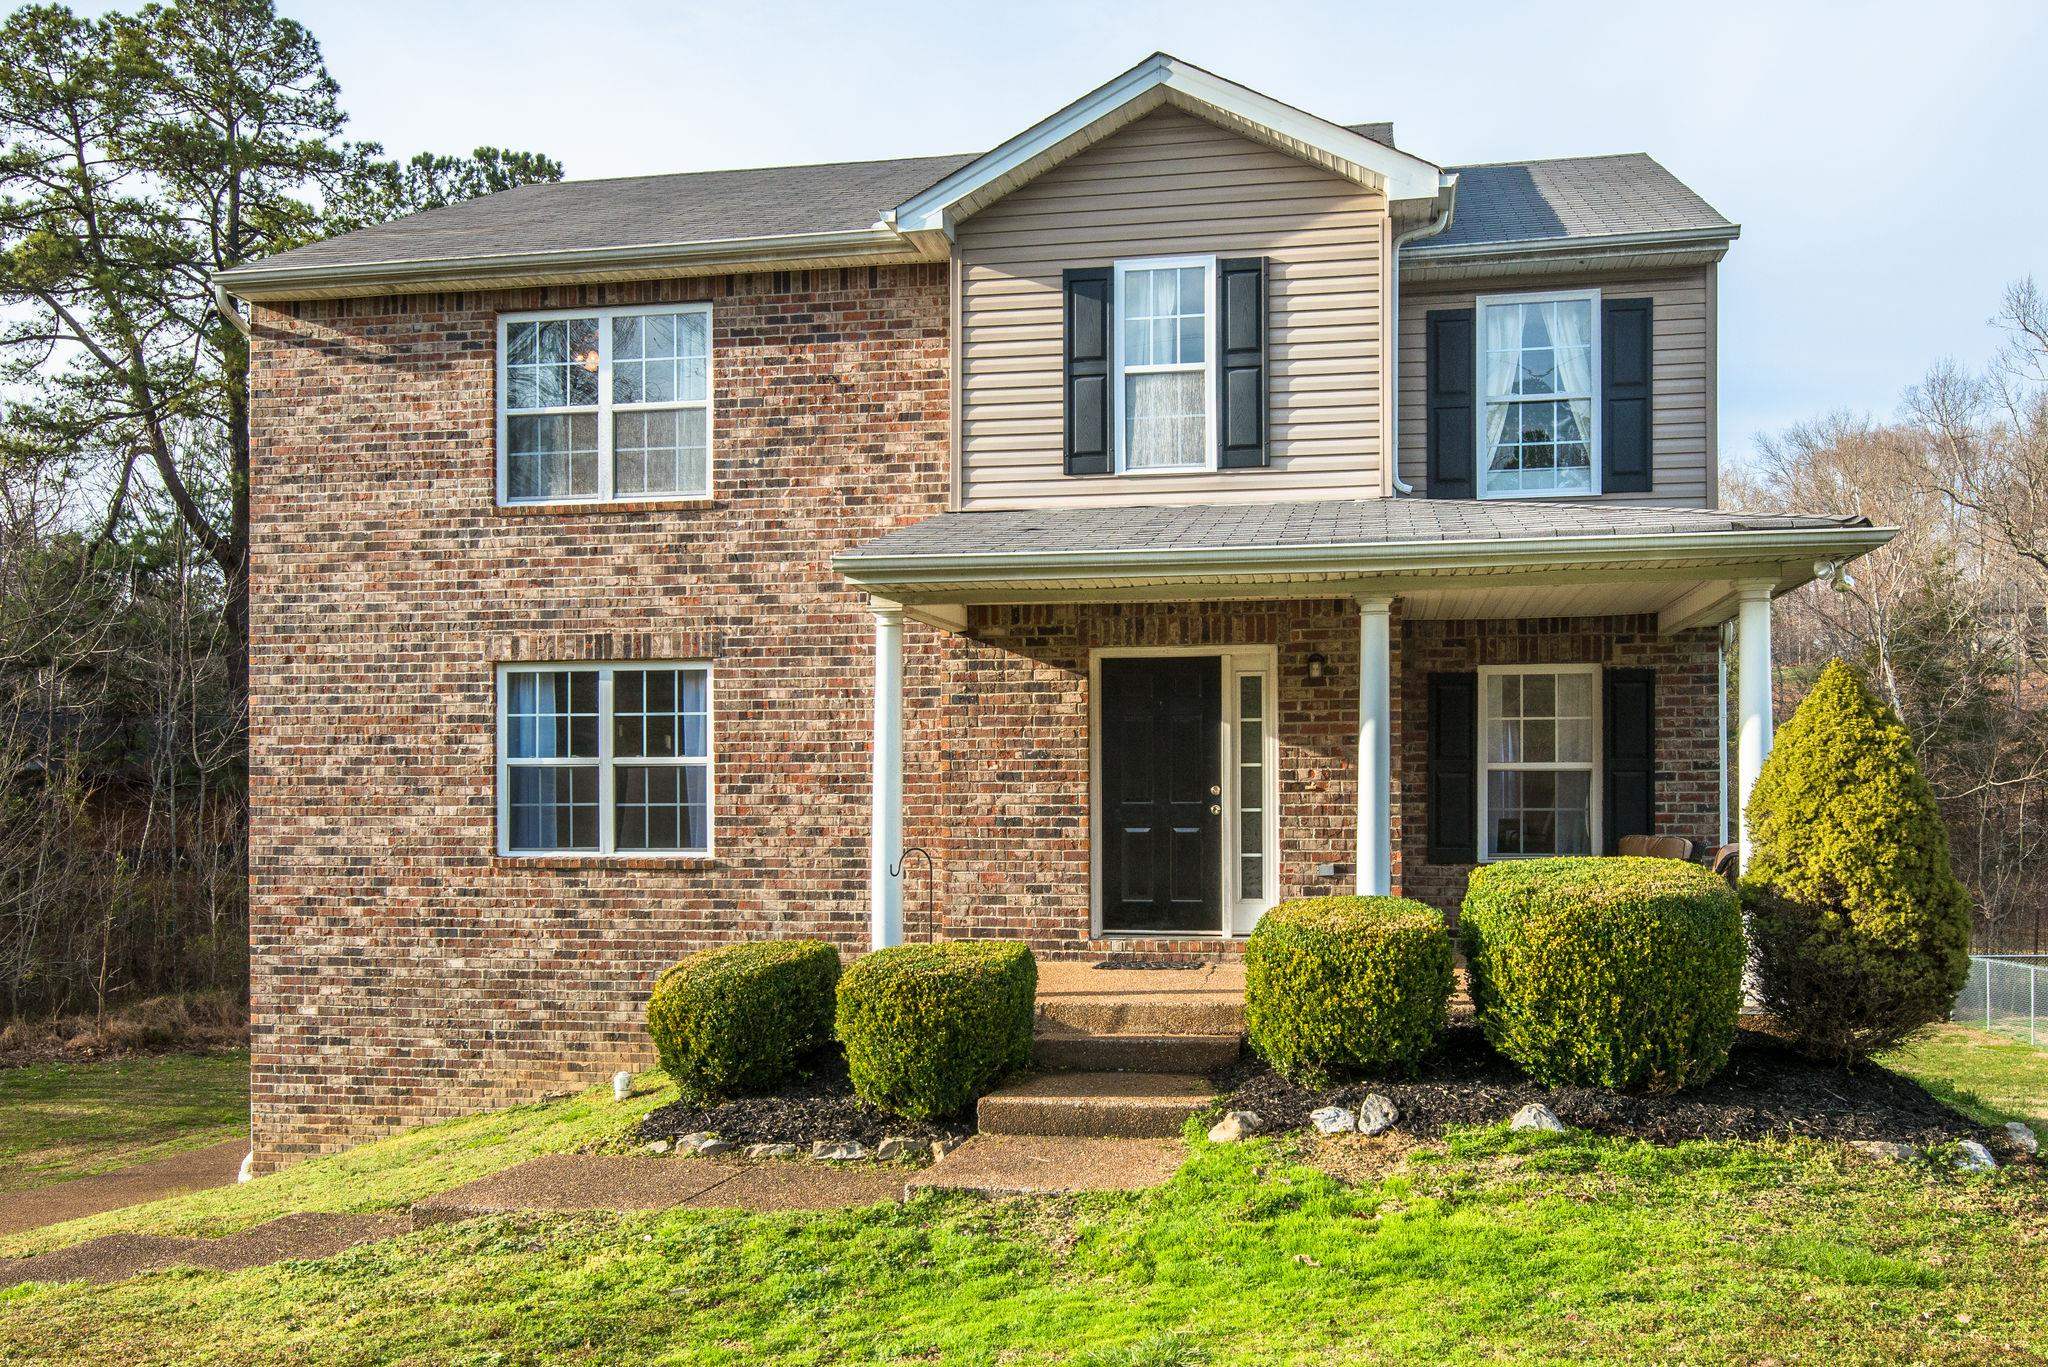 7404 Penngrove Ln 37062 - One of Fairview Homes for Sale